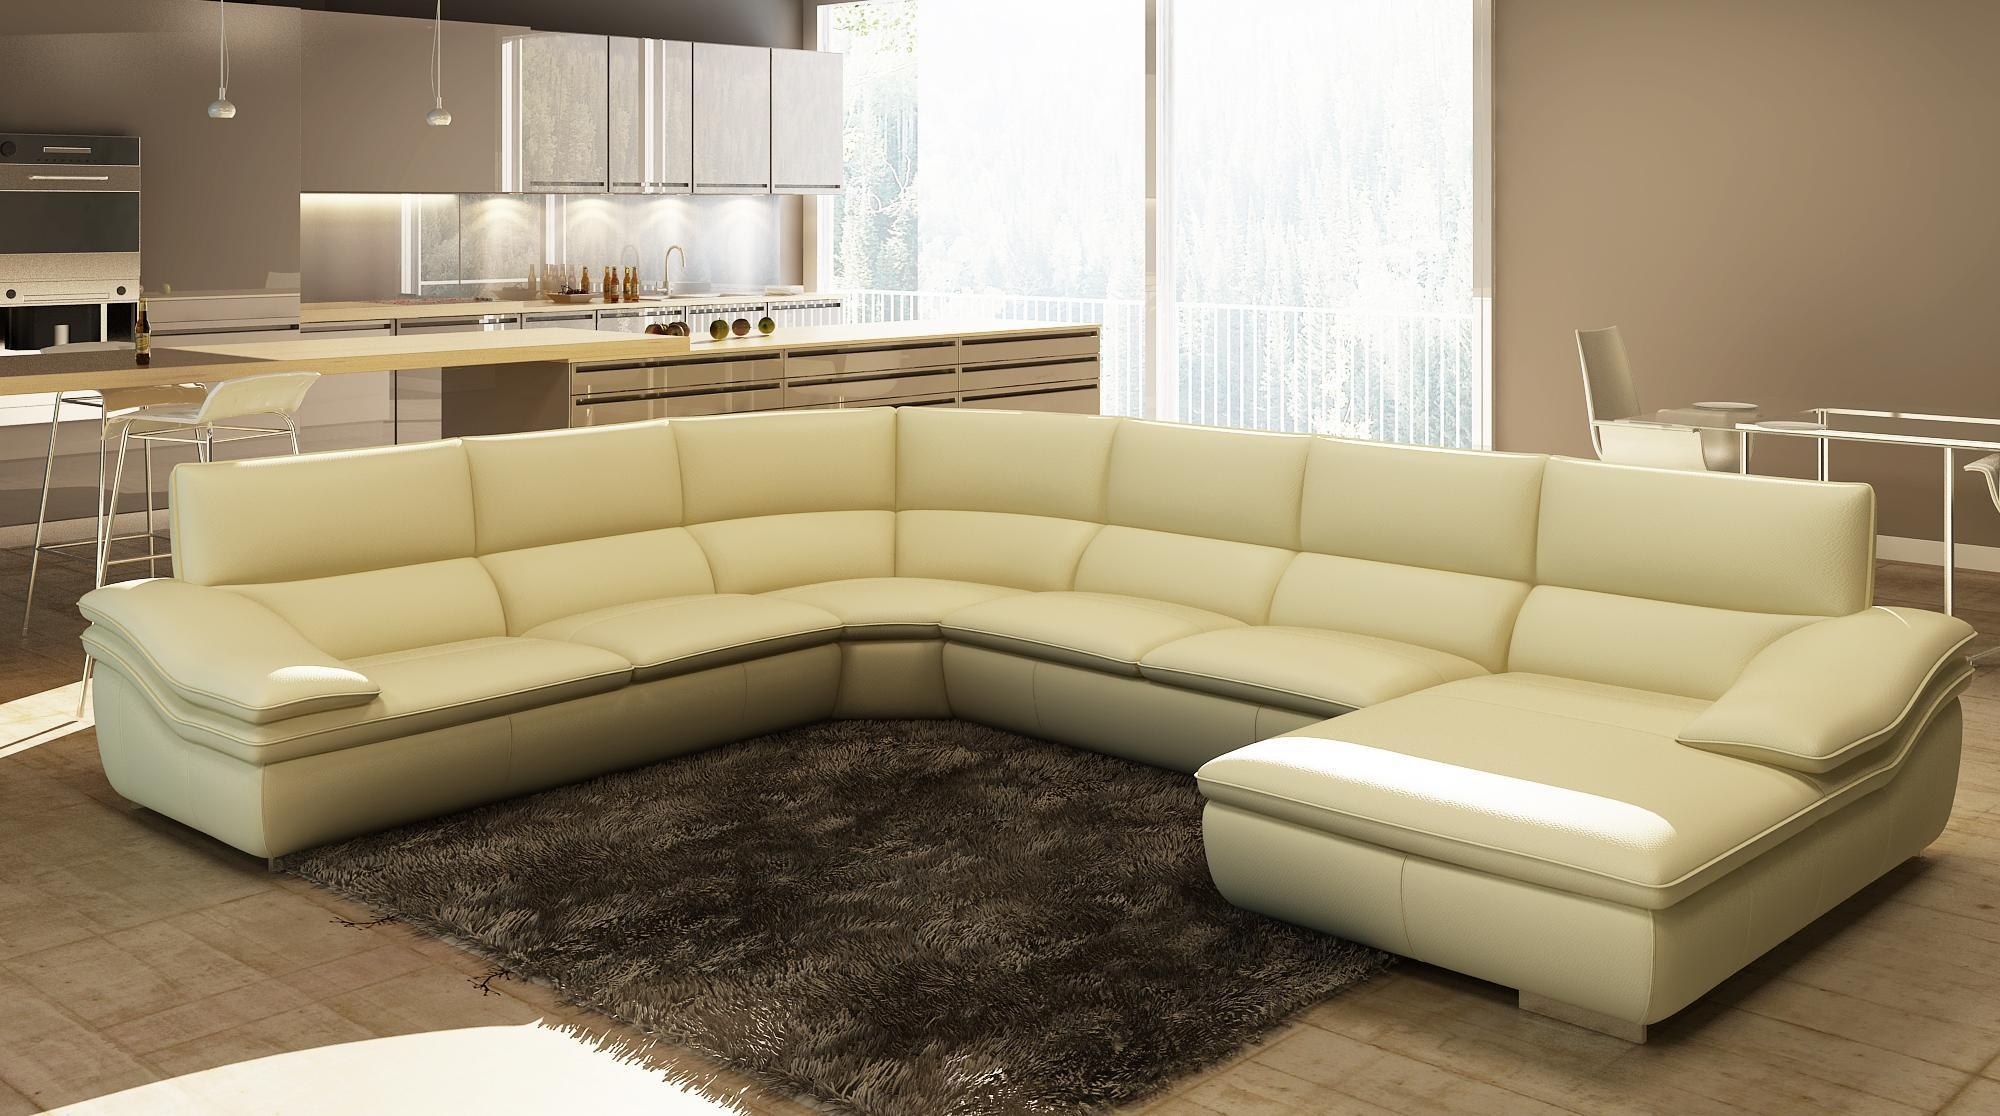 Large Leather Sectional Sofa ~ Uballs Throughout U Shaped Leather Sectional Sofa (Image 14 of 20)